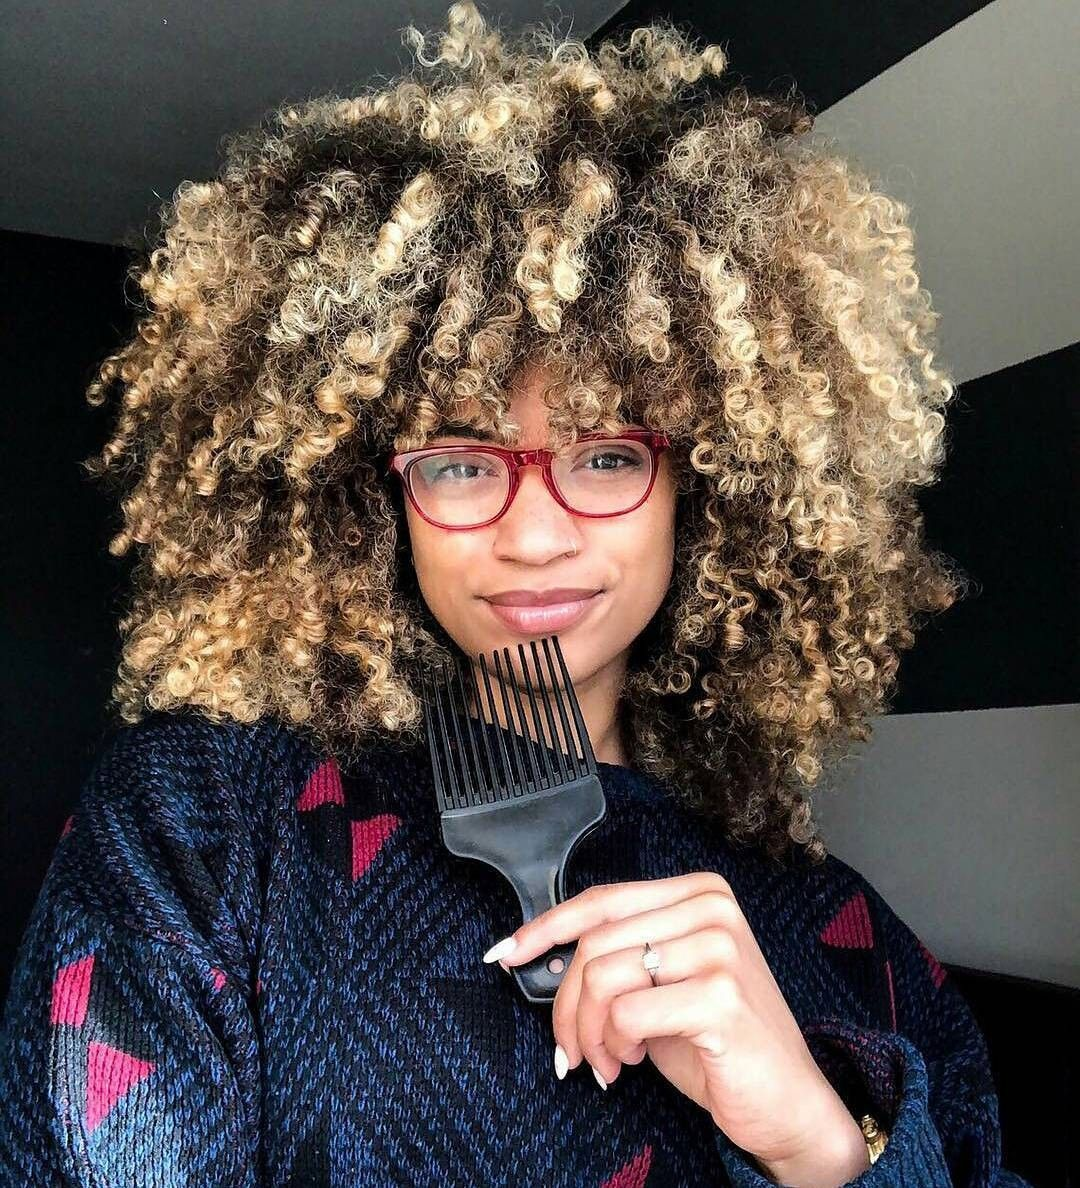 Pin by Margaux Tabary on Afro  Pinterest  Natural Hair goals and